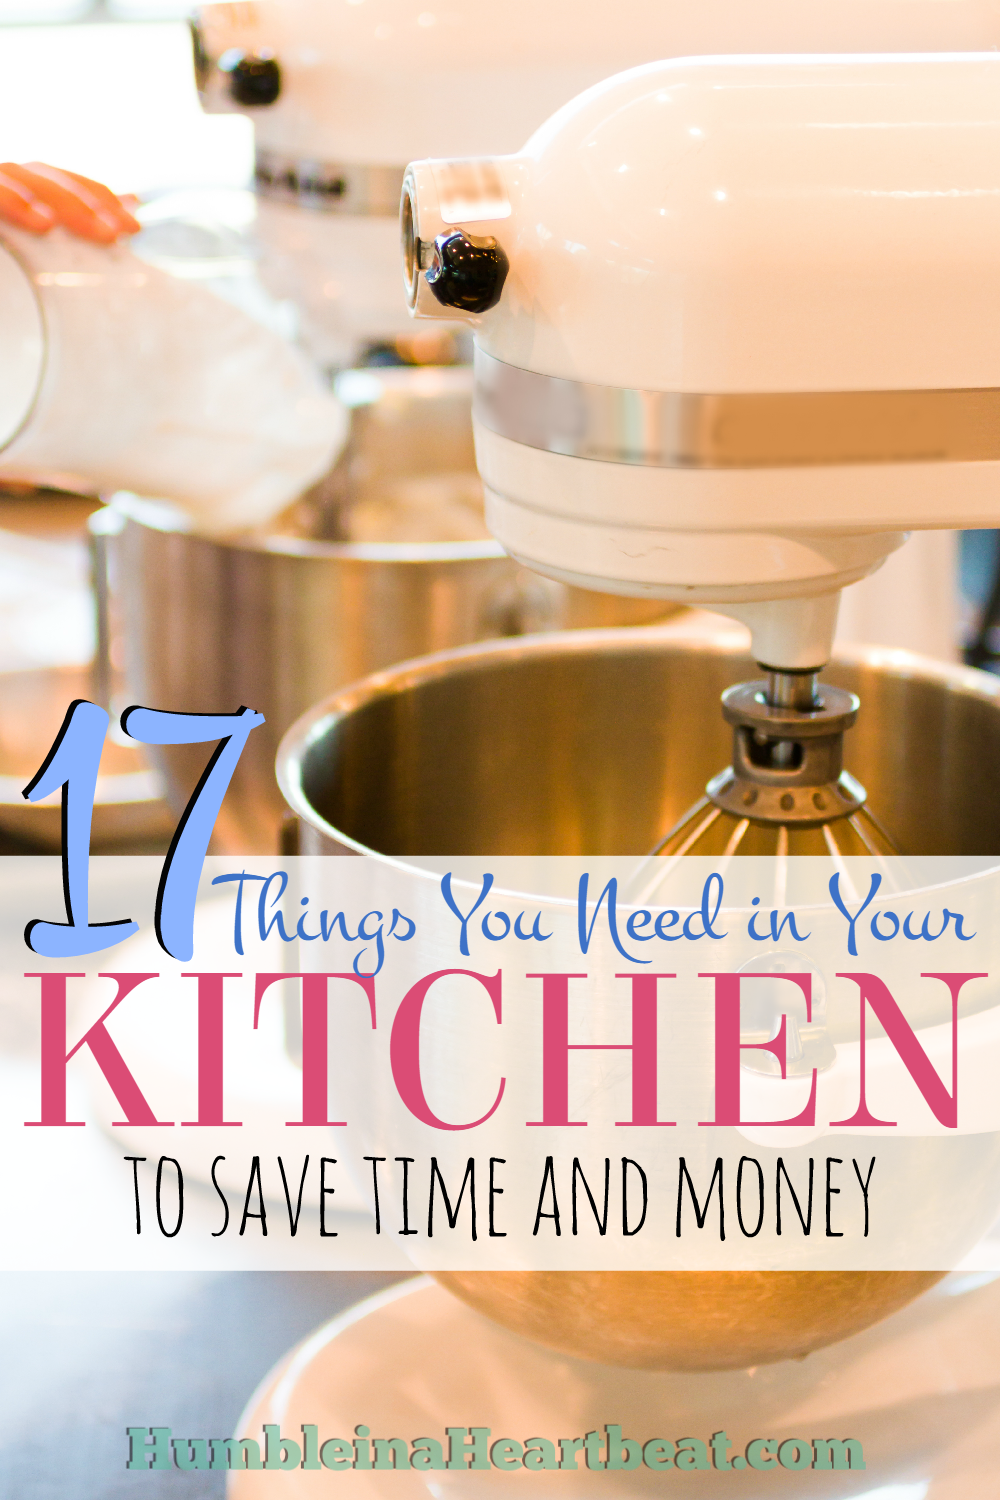 The Kitchen Appliance Store 17 Kitchen Appliances And Tools That Can Save You Time And Money